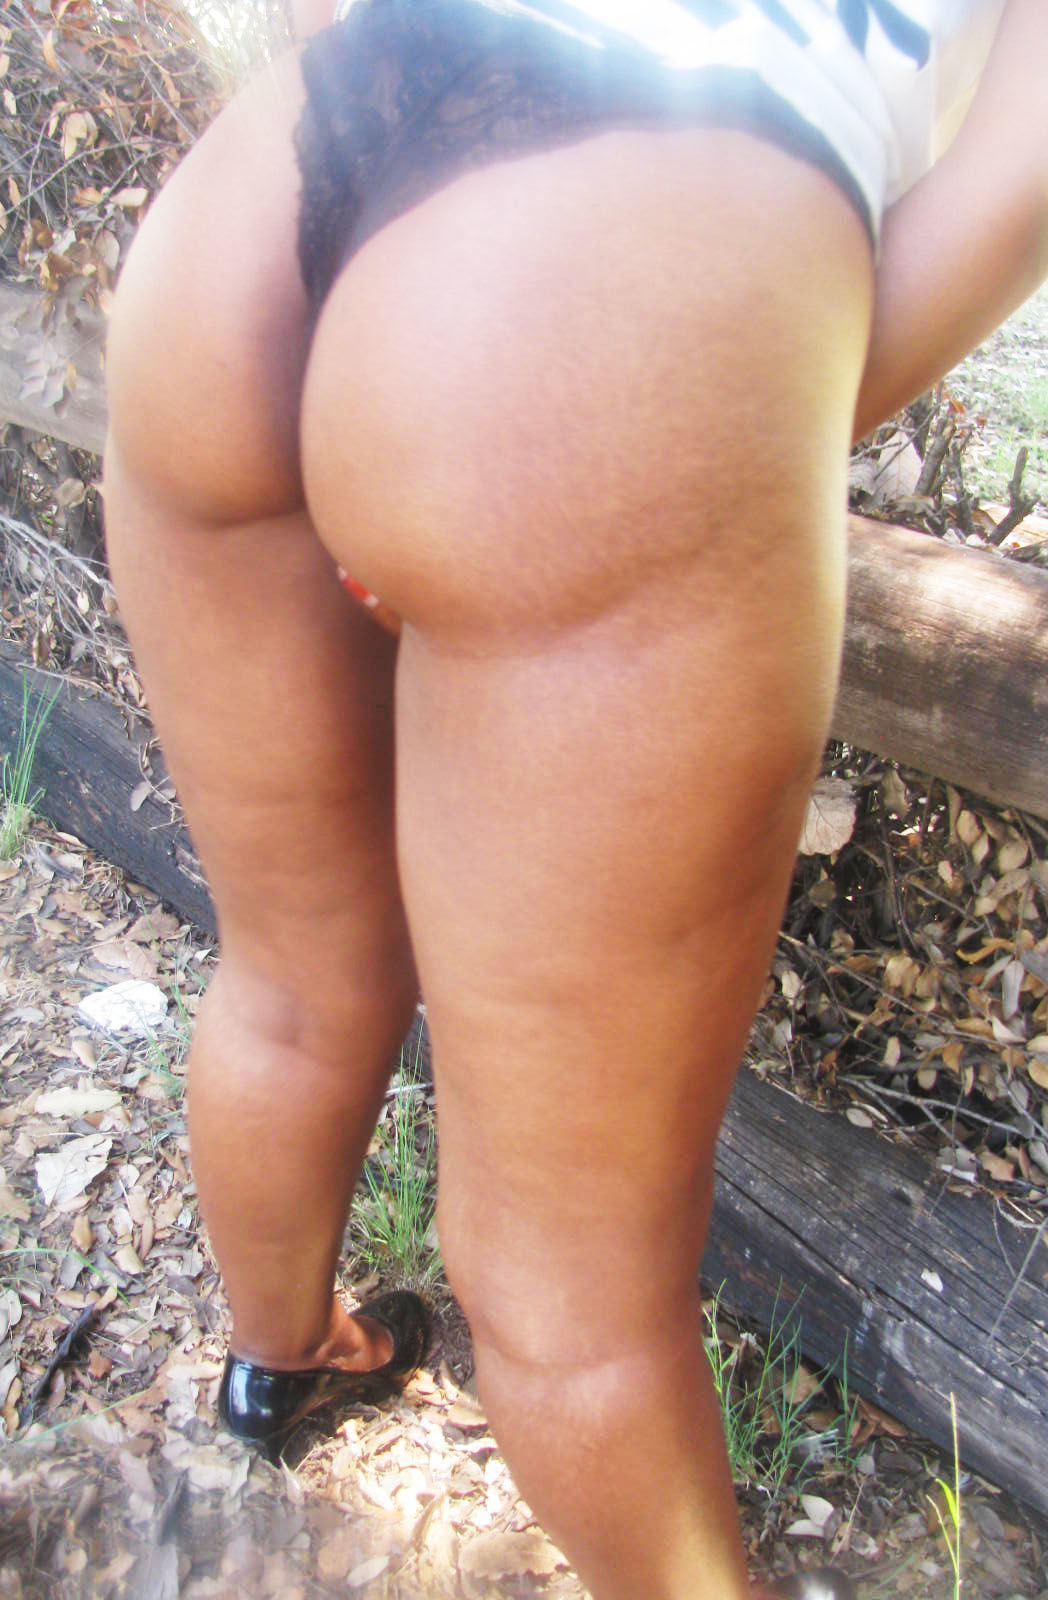 Angel Baby Cakes, South African Escort In Nairobi-4175